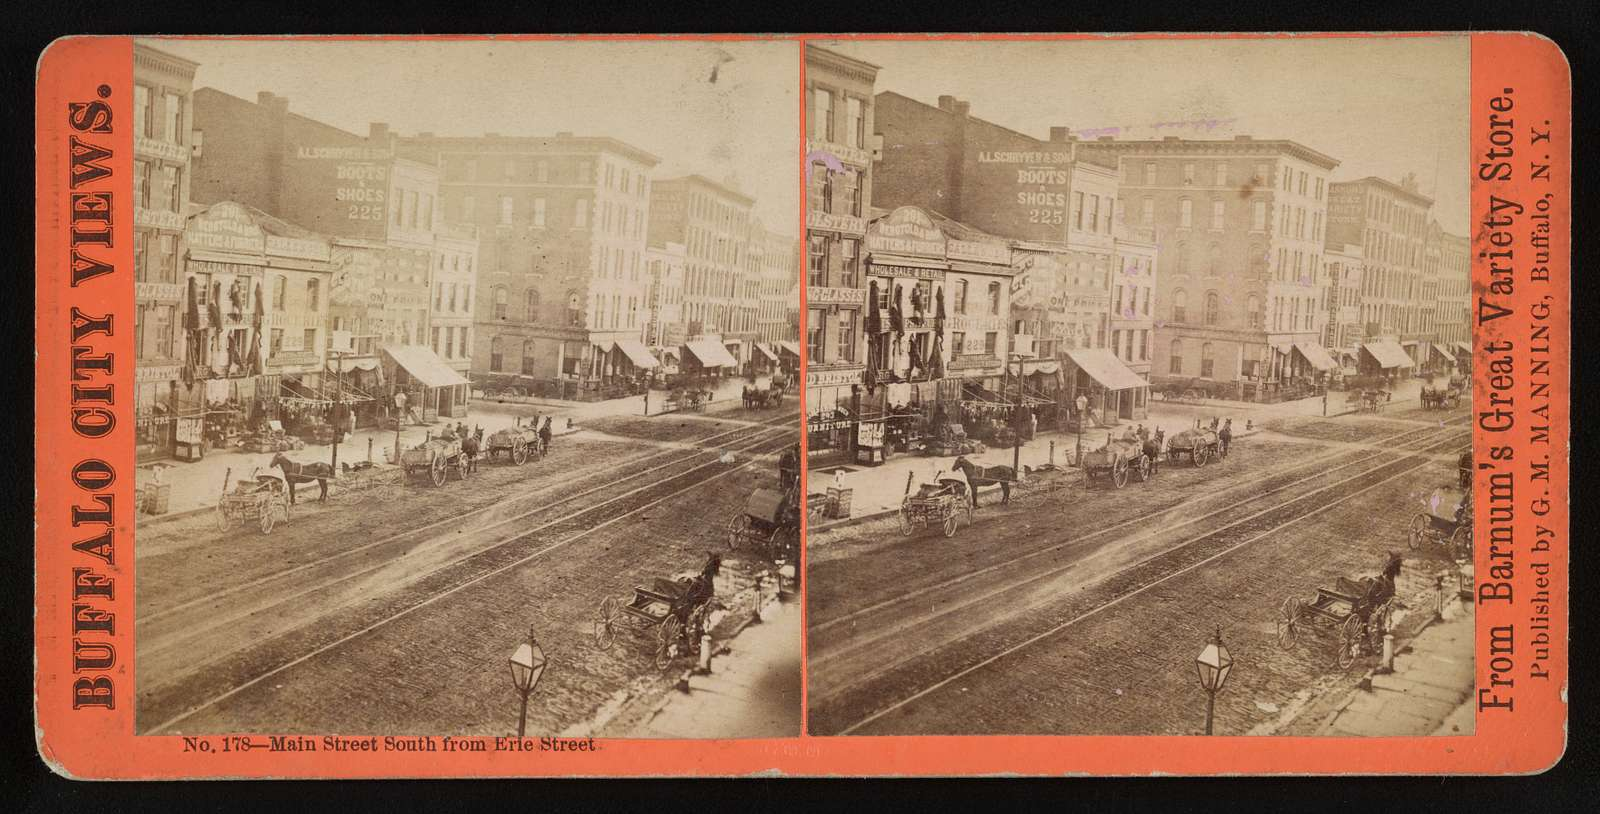 Main Street south from Erie Street published by G. M. Manning, Buffalo, N.Y